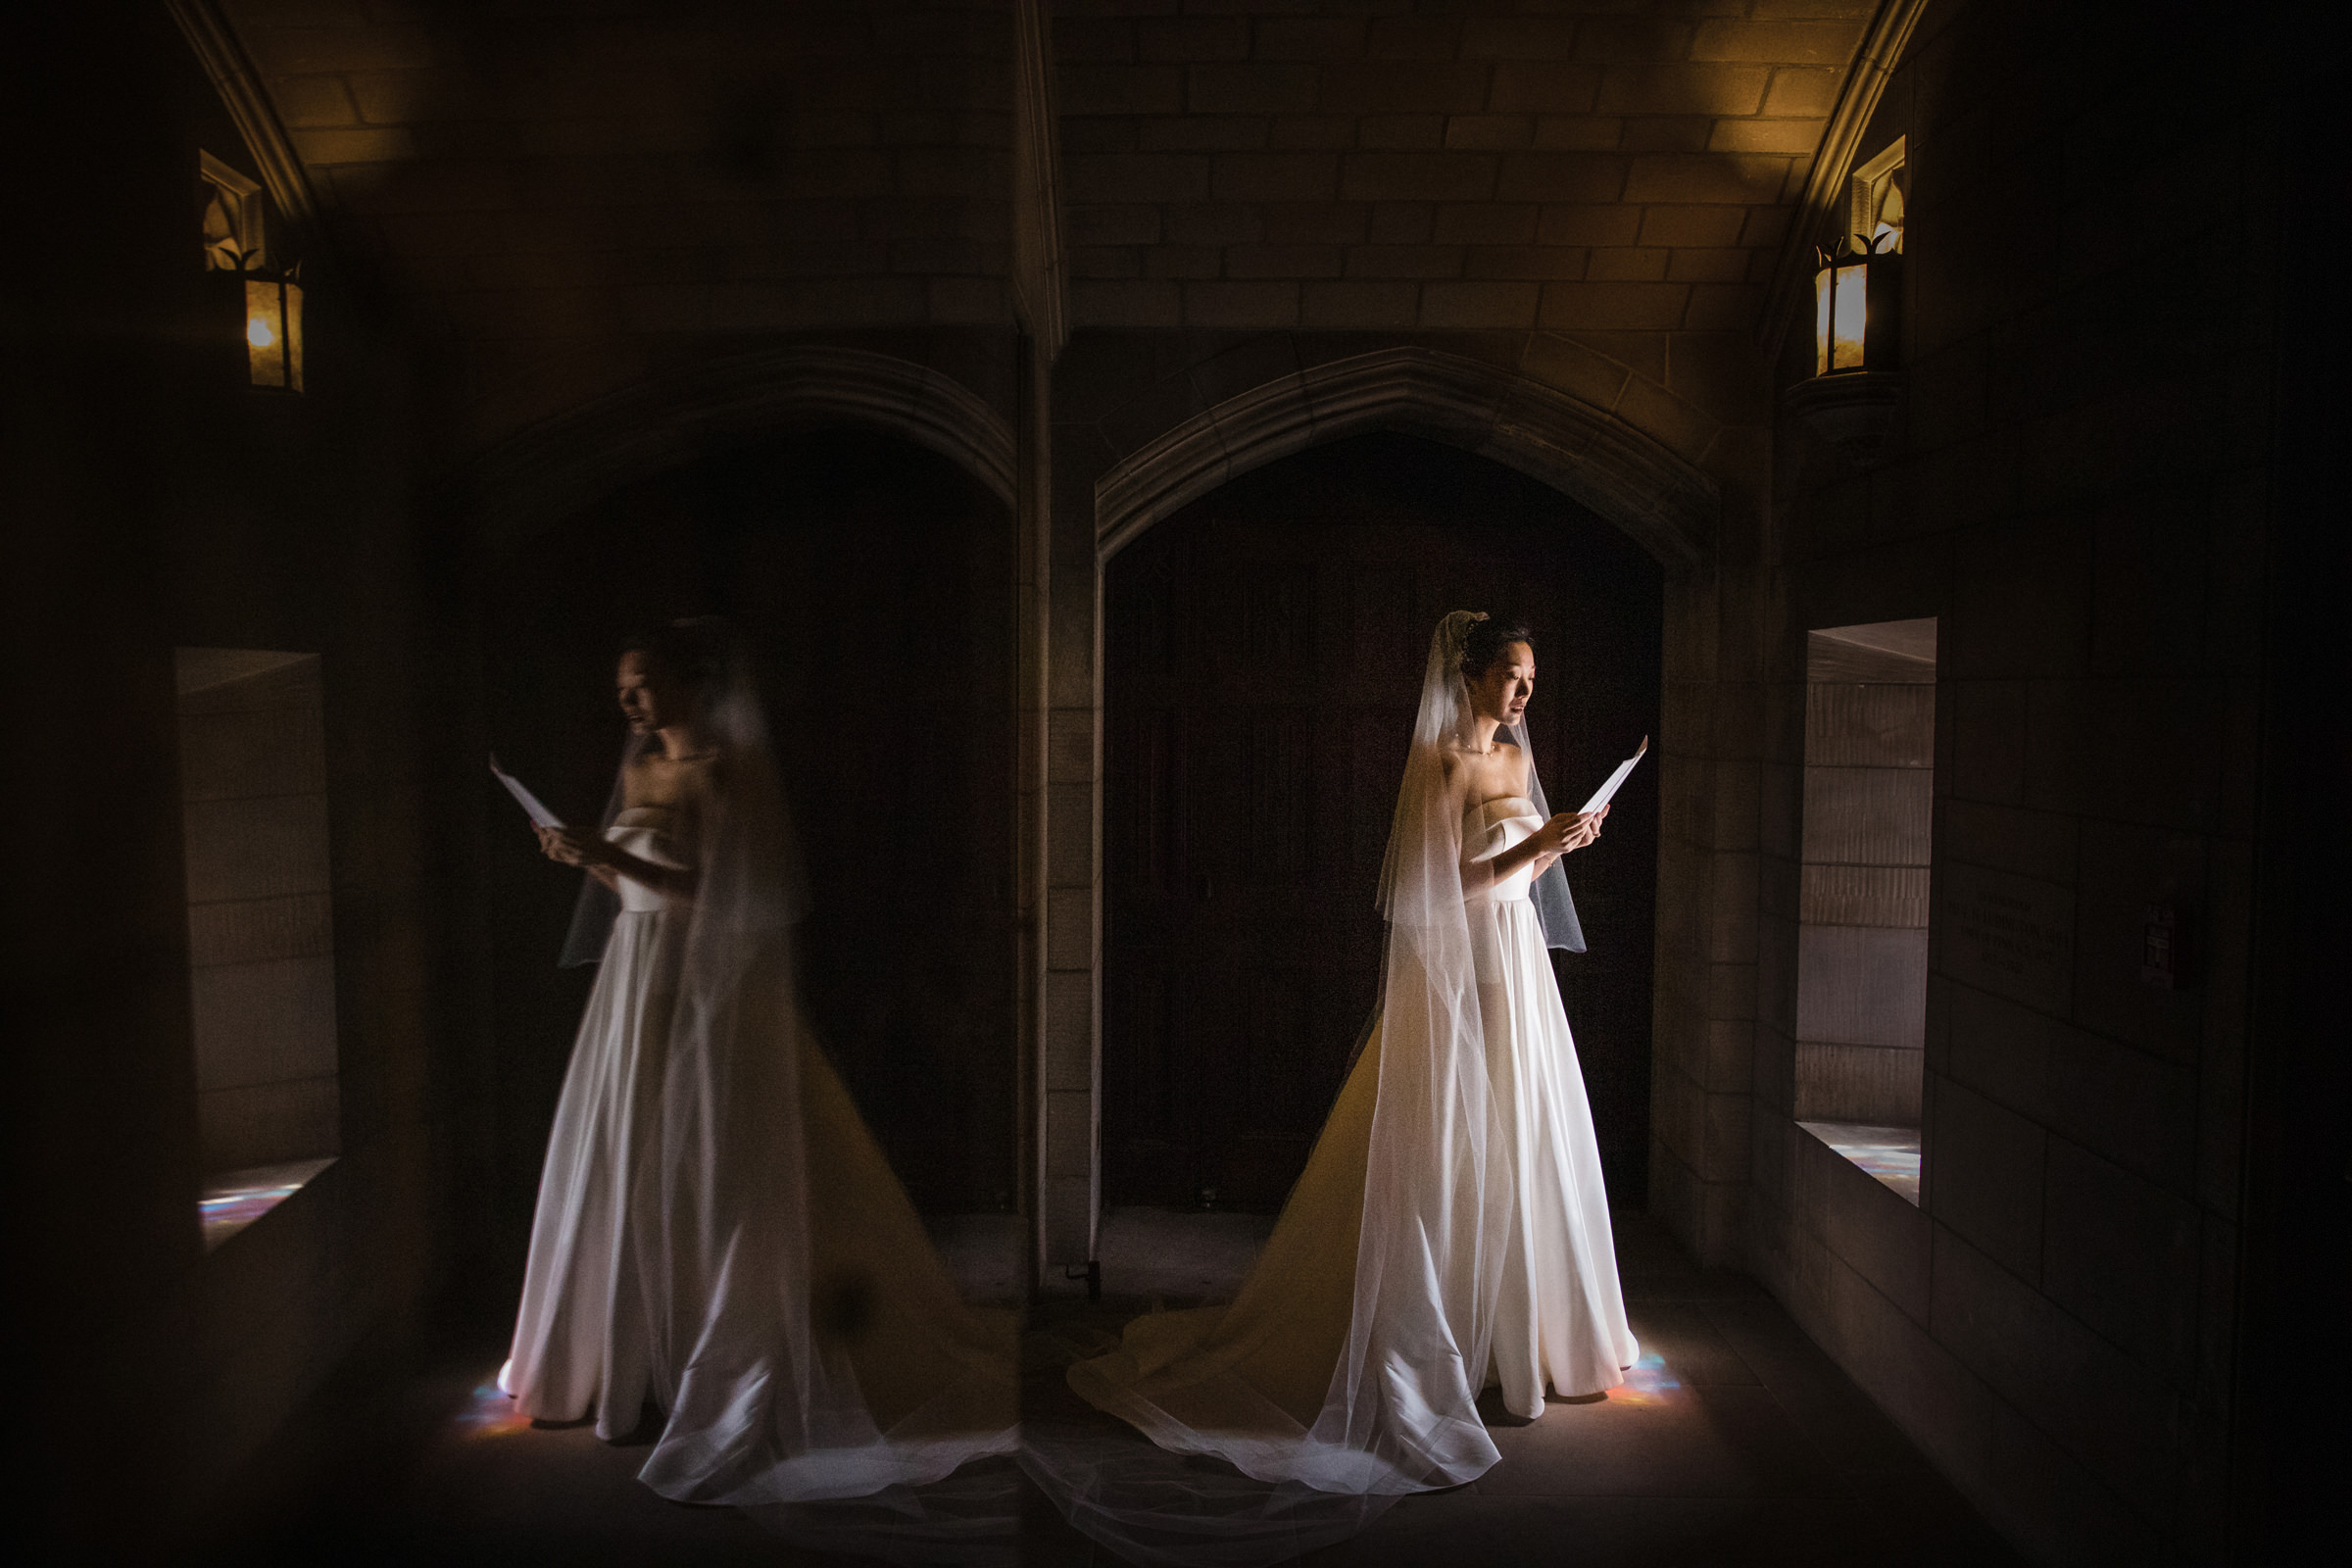 Bride memorizes her vows in soft windowlight - photo by Susan Stripling - New York